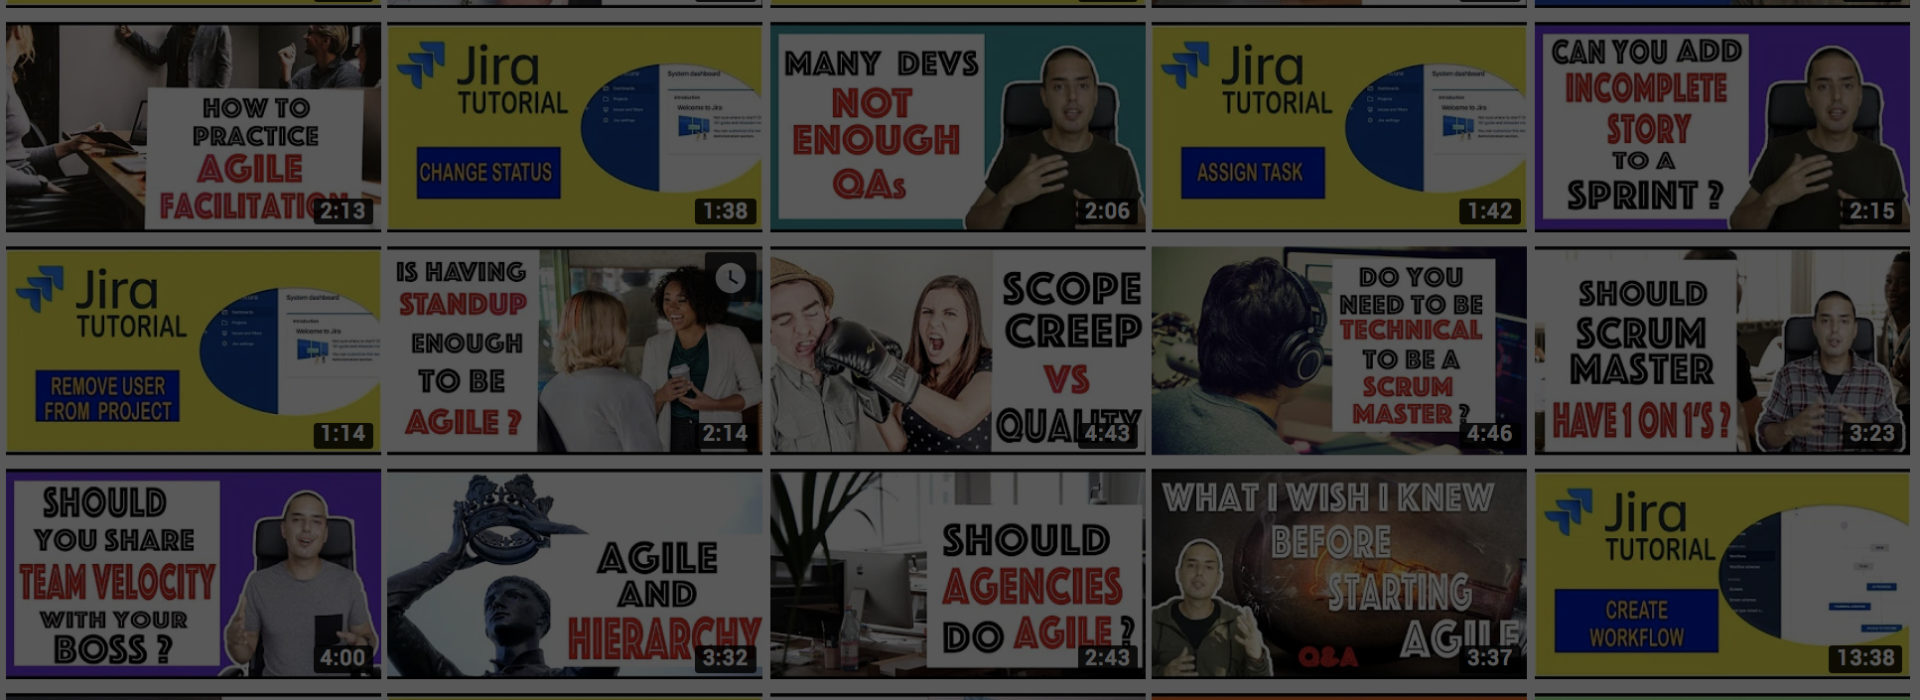 FREE Agile Training Videos